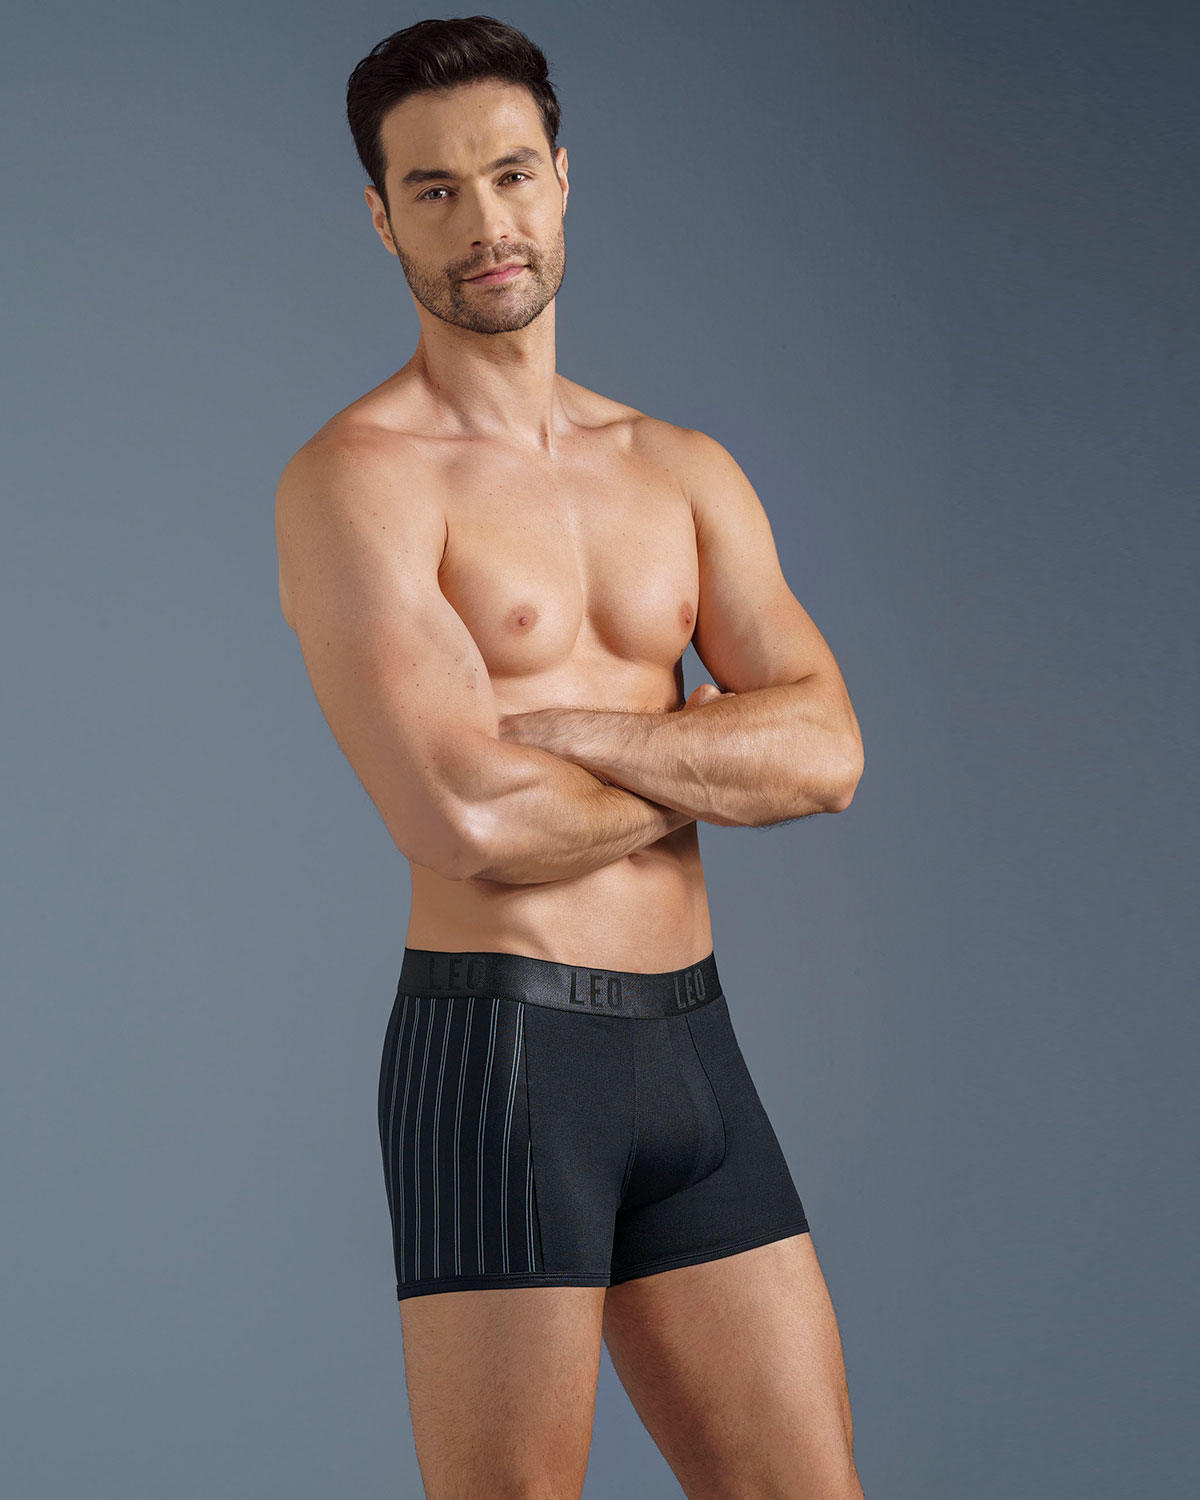 leo flex-fit boxer brief-713- Black/Stripes-MainImage